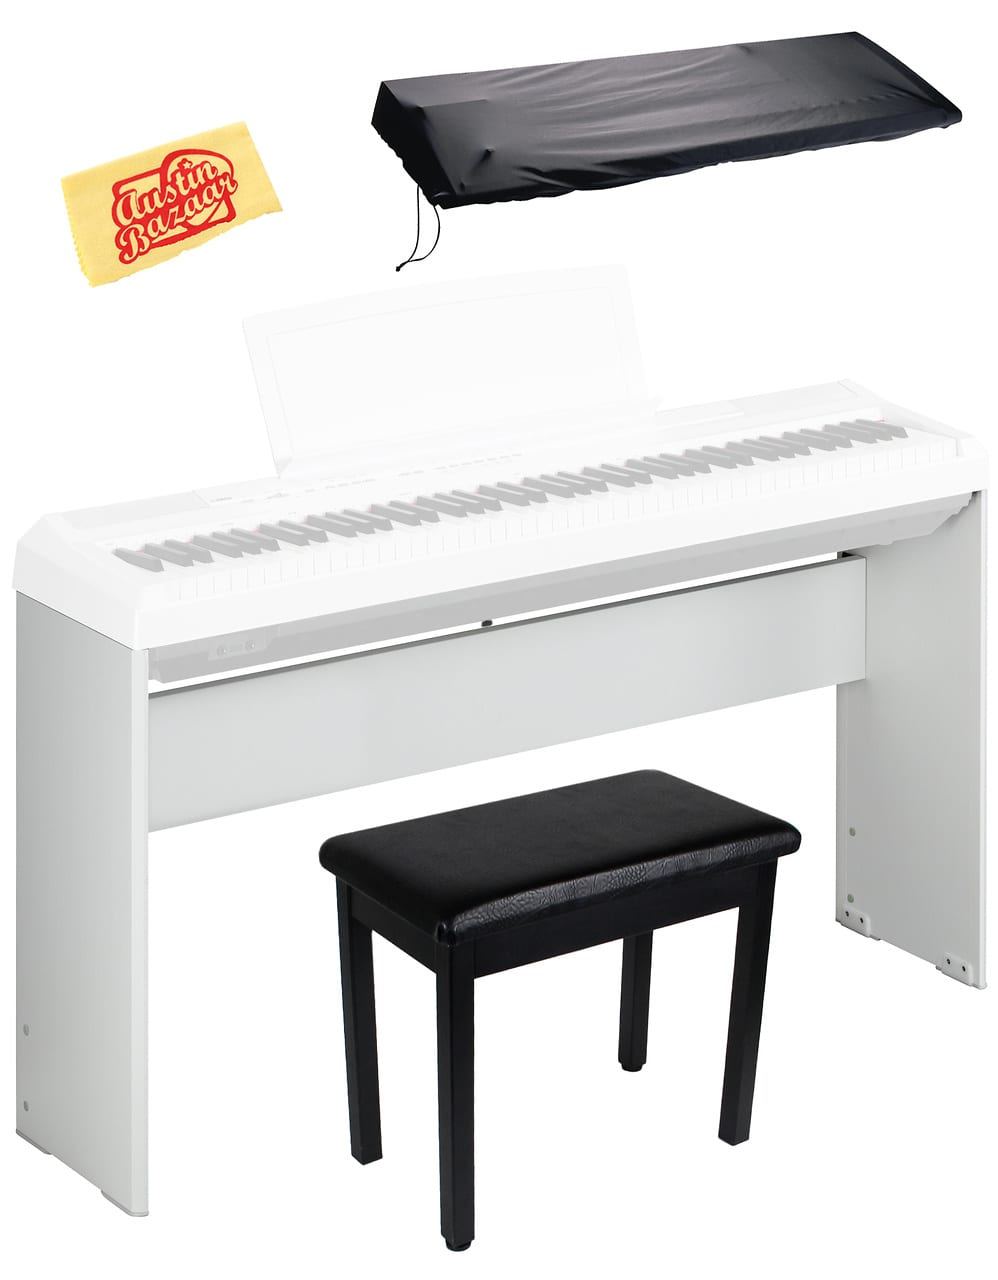 Yamaha l85wh digital piano stand for p35 p85 p95 p105 for Yamaha p 35 digital piano